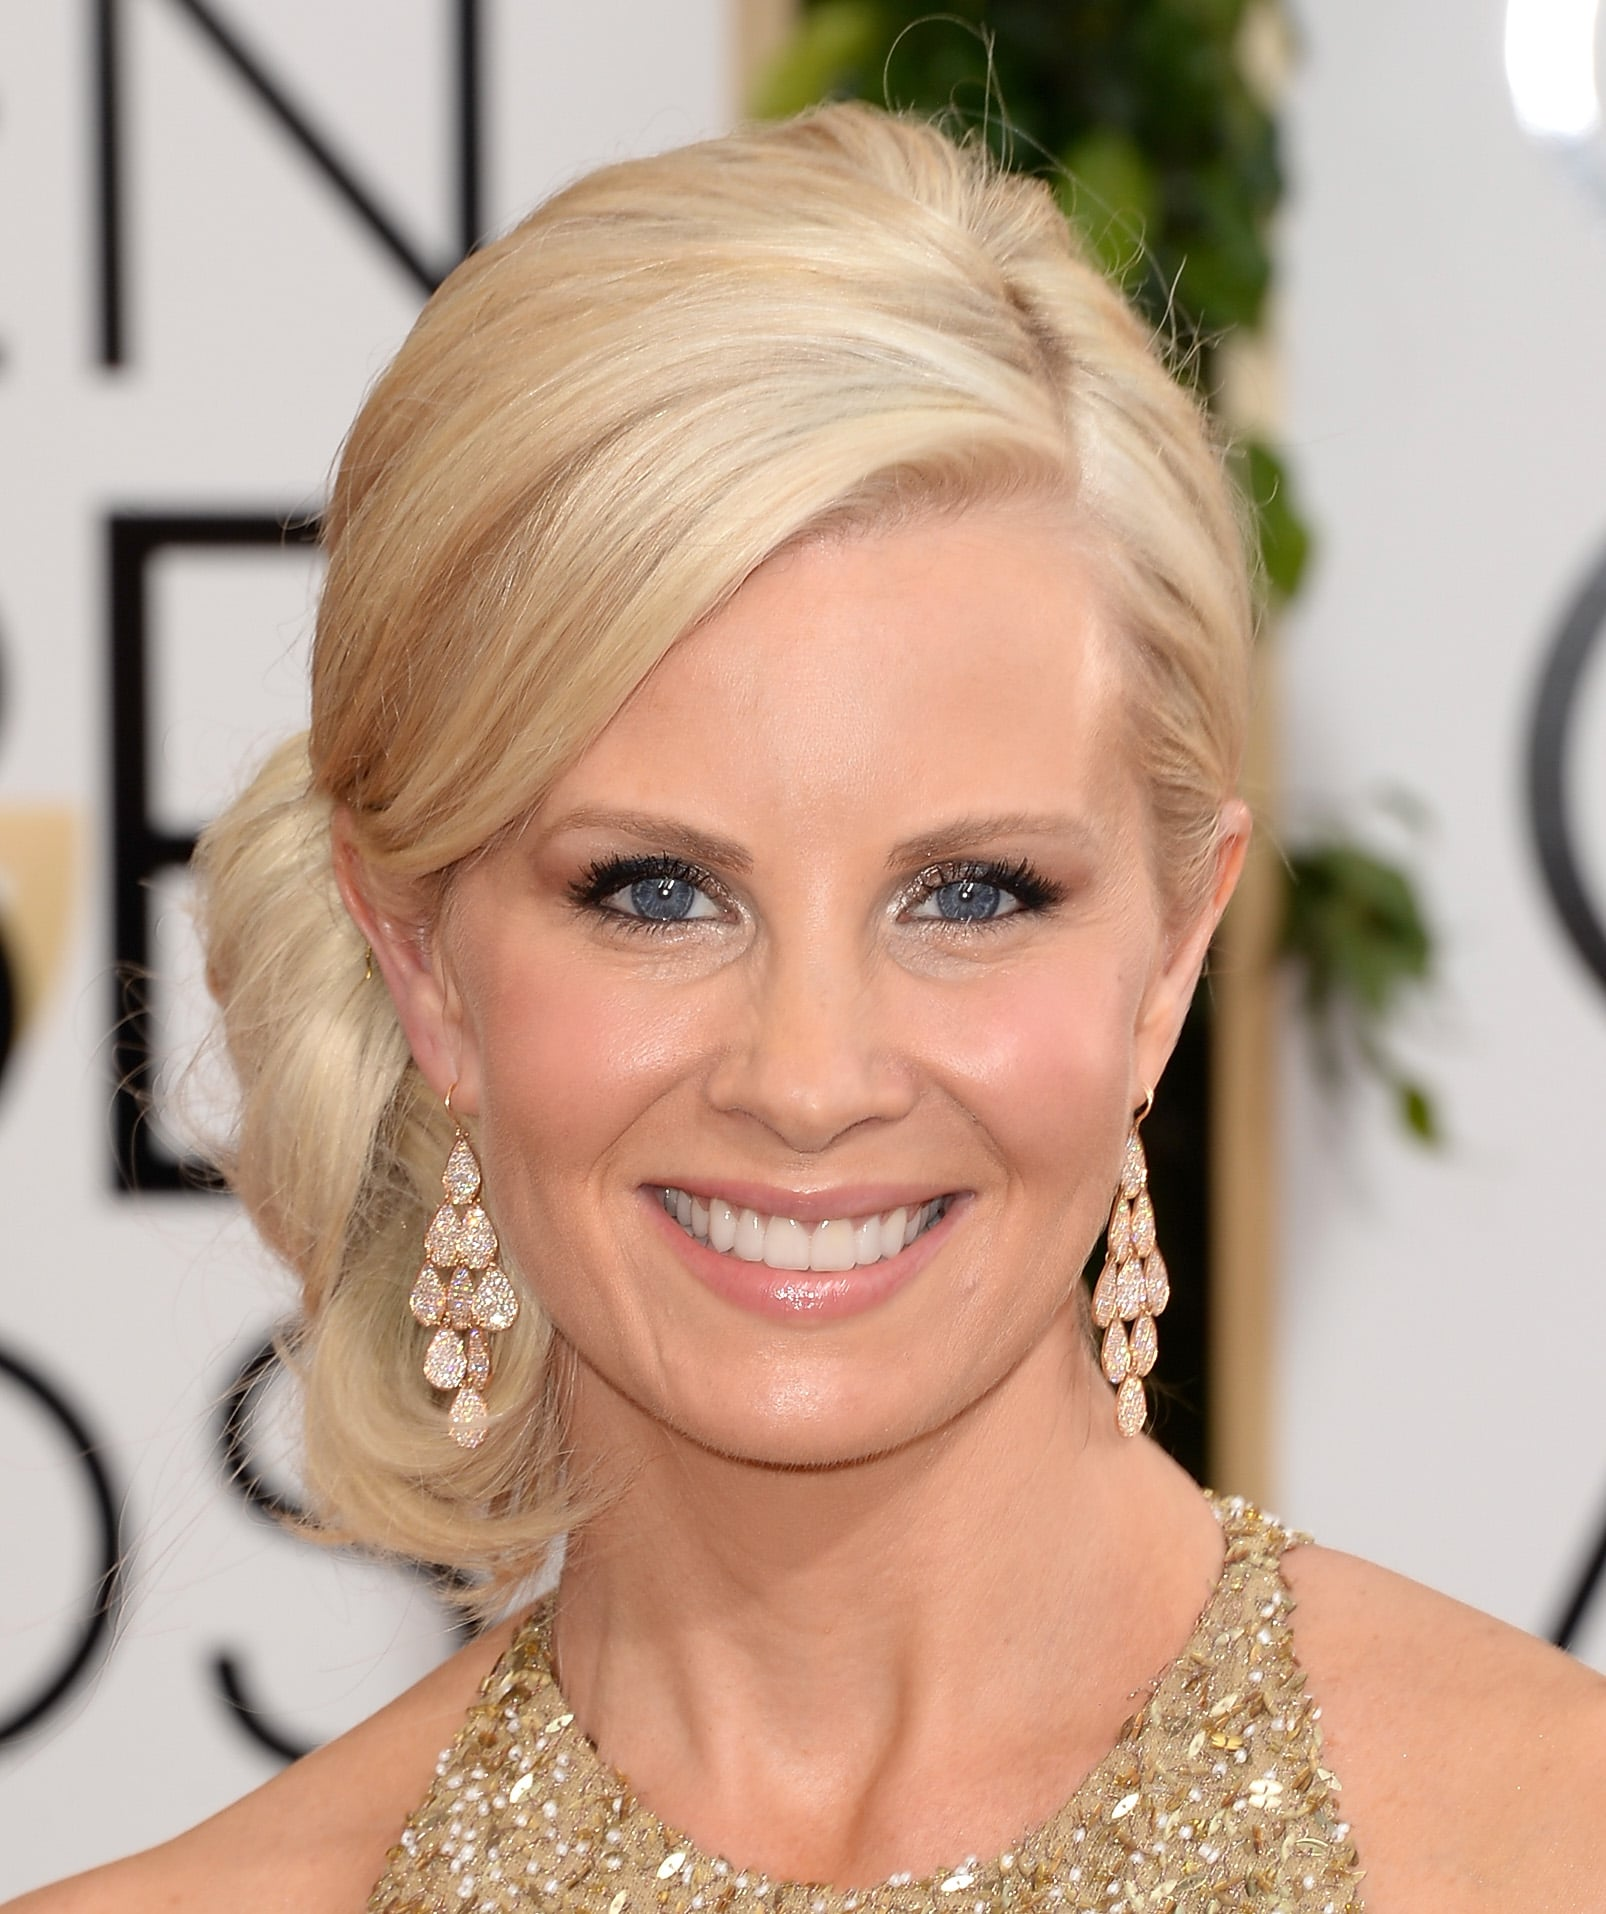 Monica Potter's bronzed goddess look, shimmering shadow and a perfect pout, was the epitome of California cool. Her volumized chignon lent an Old Hollywood spin to her stunning style.